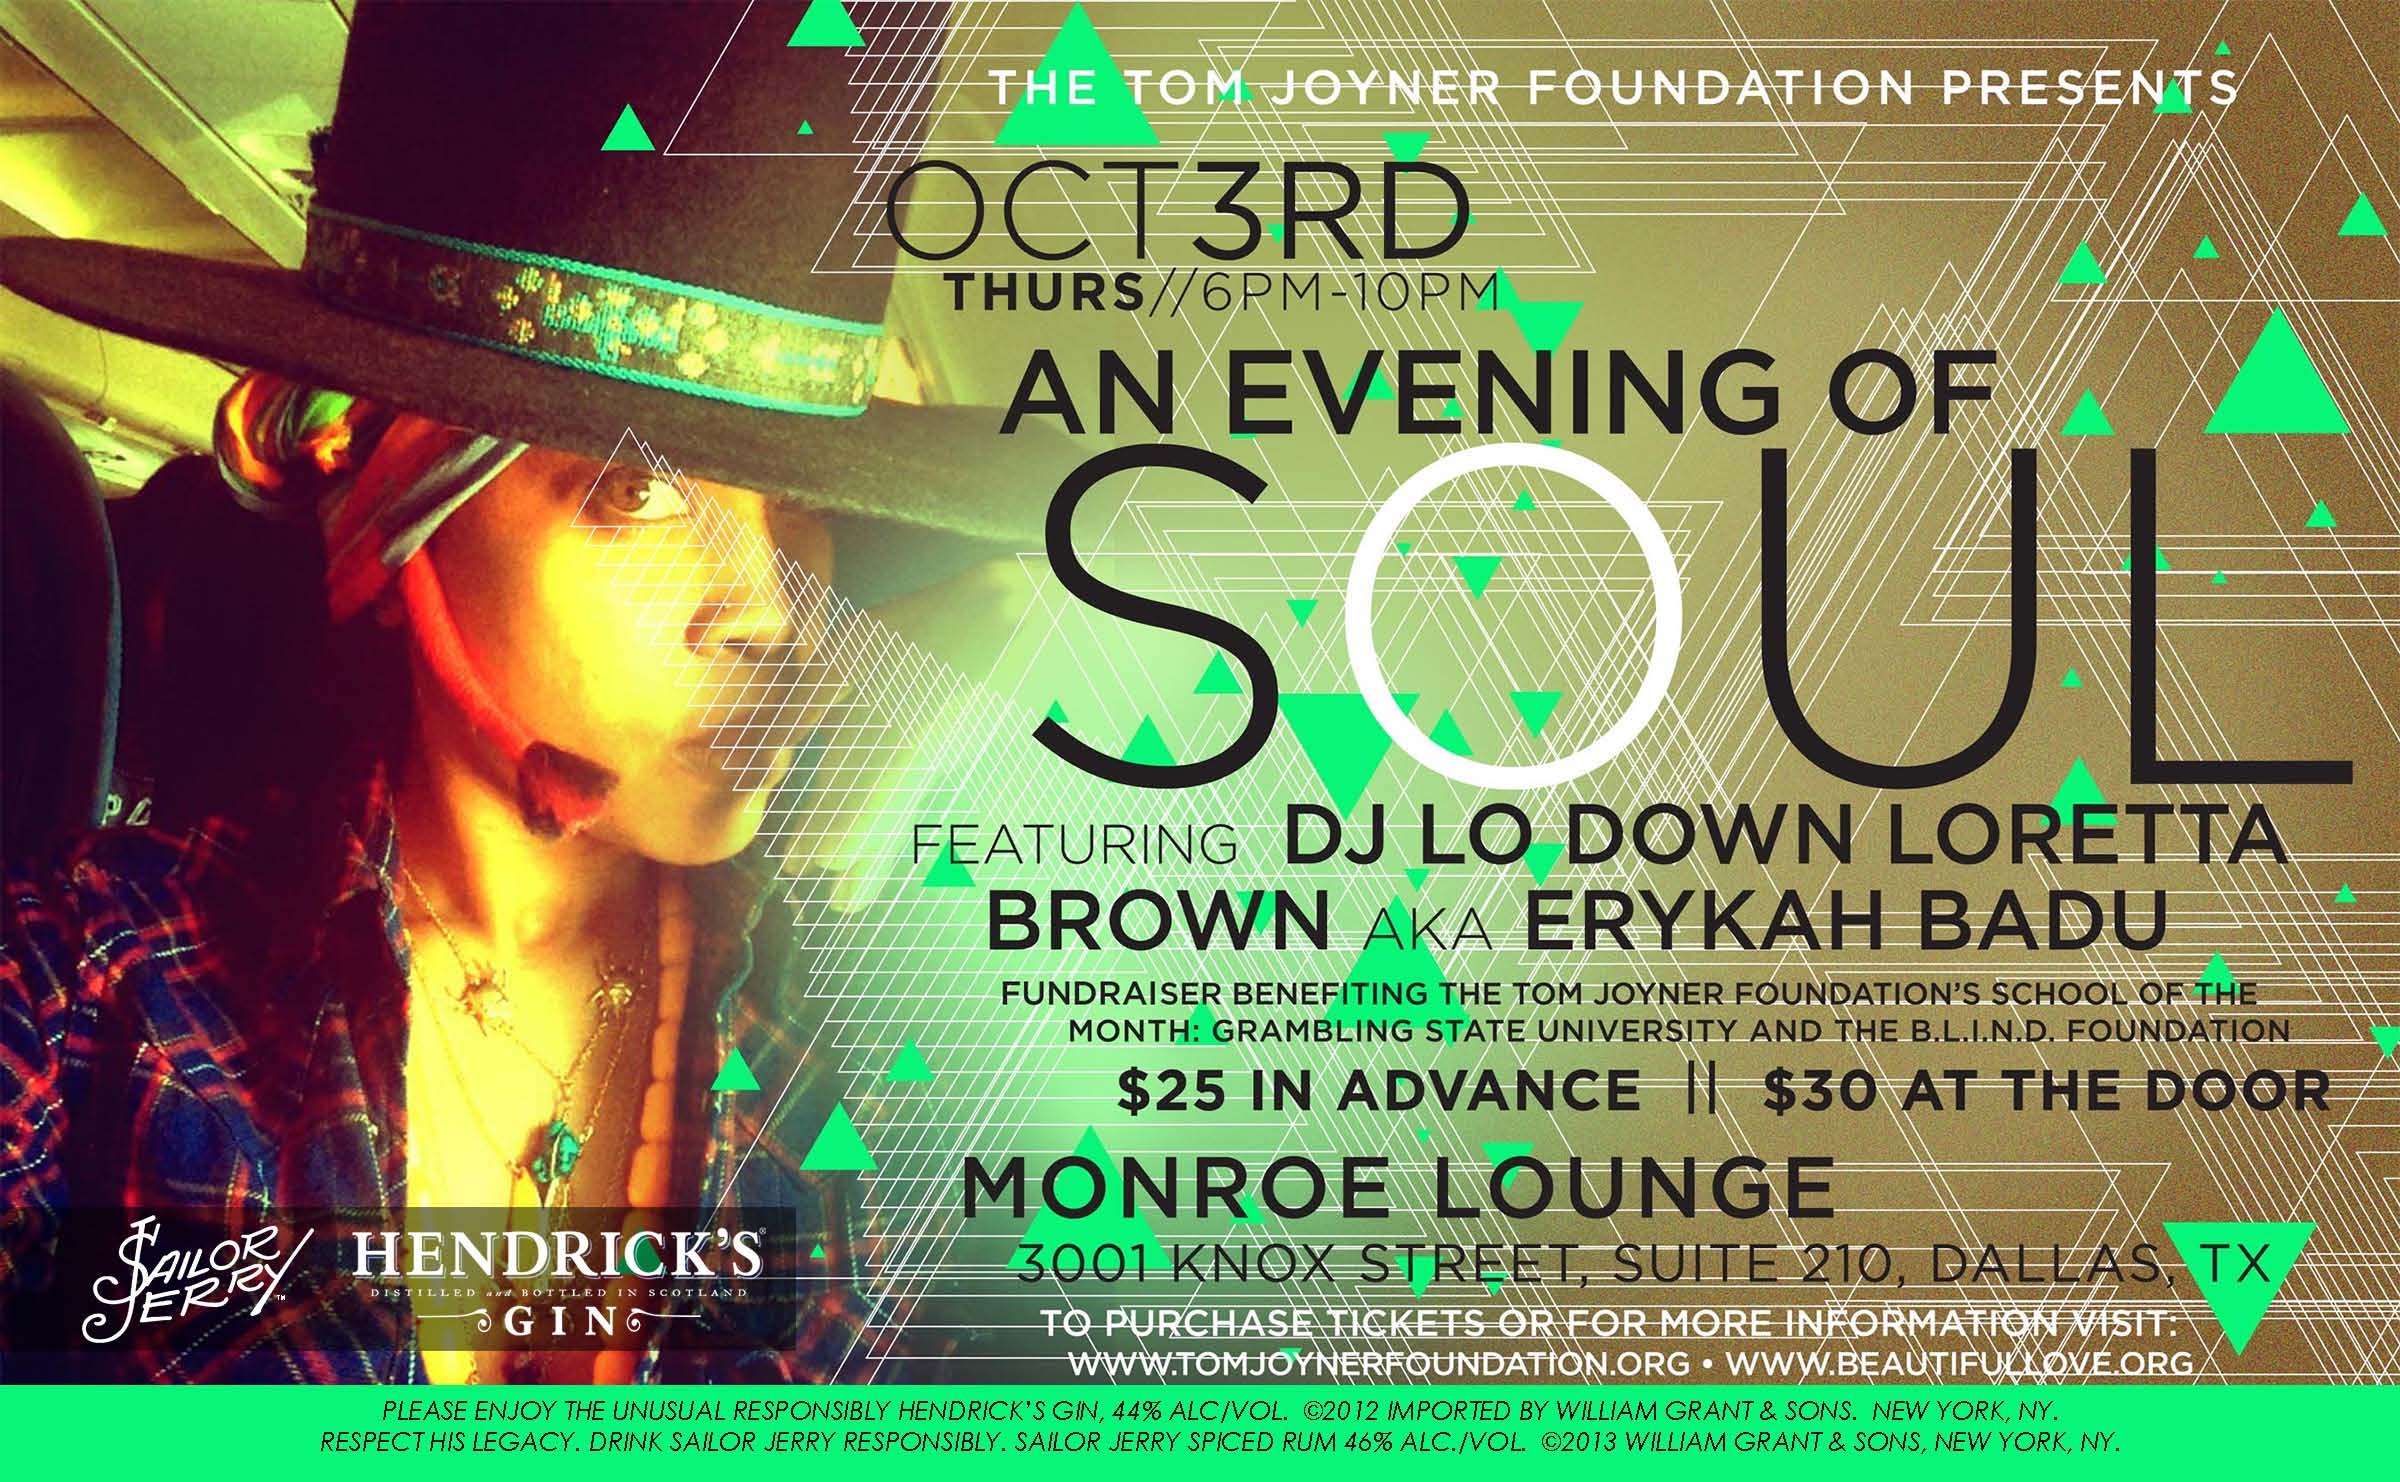 An Evening of Soul Happy Hour w/DJ Lo Down Loretta Brown aka Erykah Badu